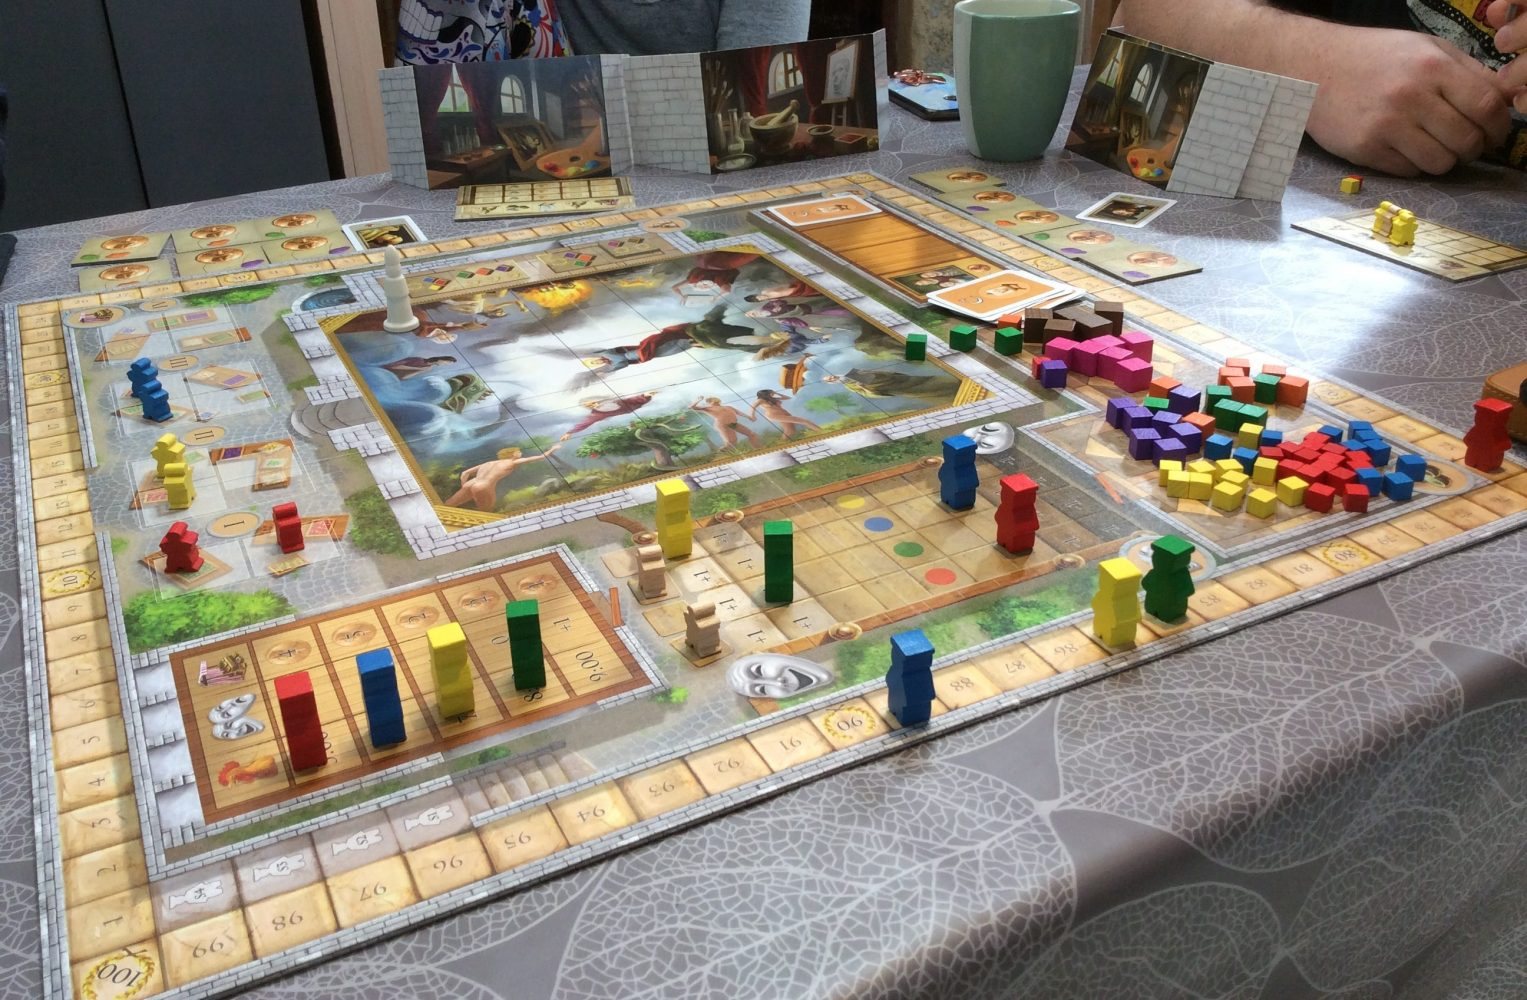 Evocative image: Strategic boardgame featuring a market. Complex. Full of people.